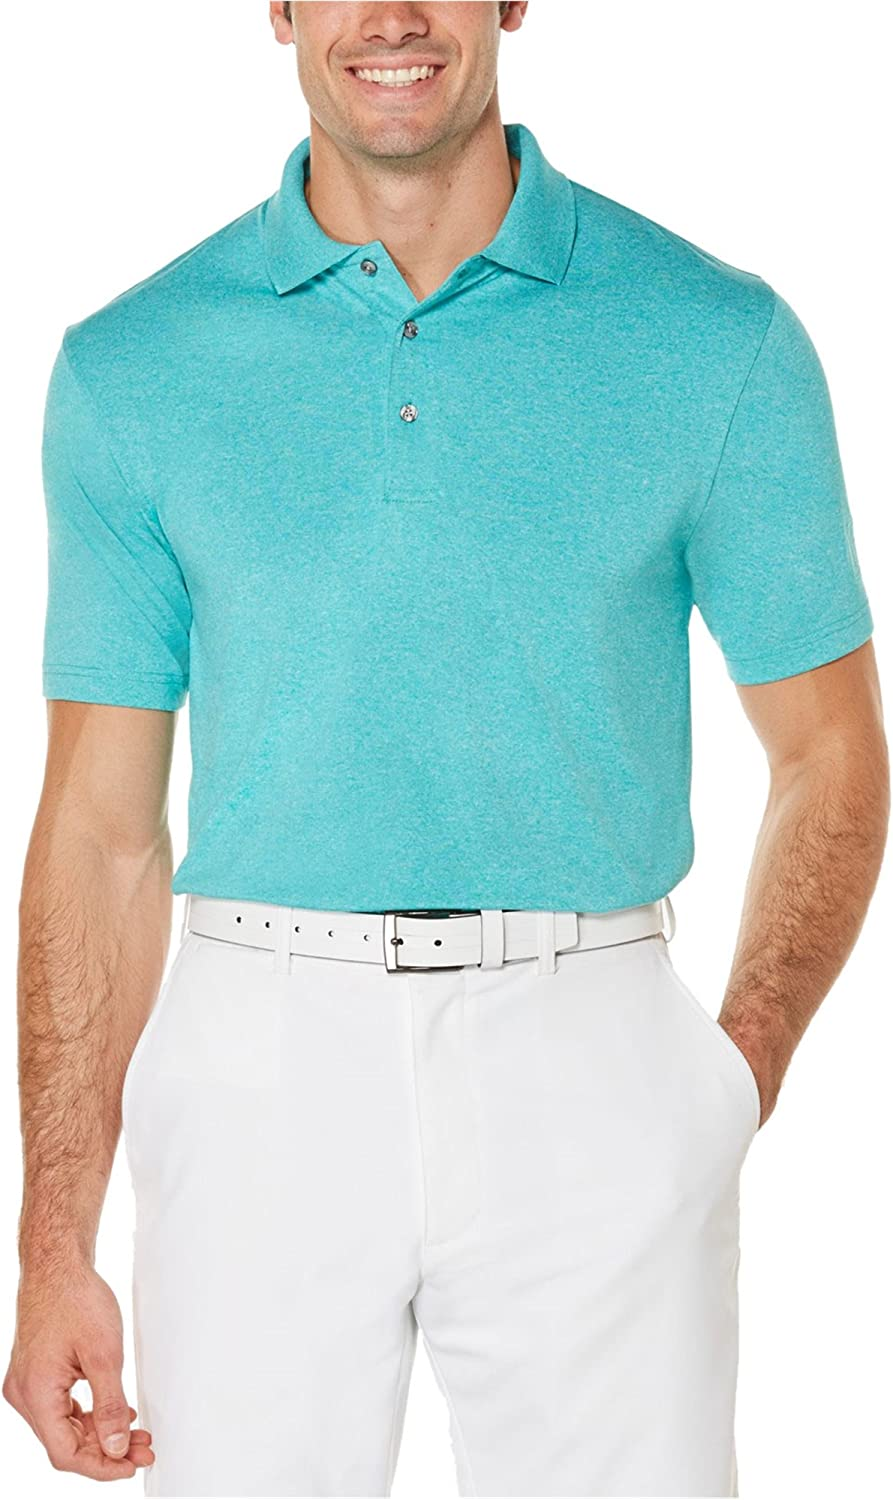 PGA TOUR Mens Heathered Rugby Blue Polo Shirt Max 85% 5 ☆ popular OFF X-Large